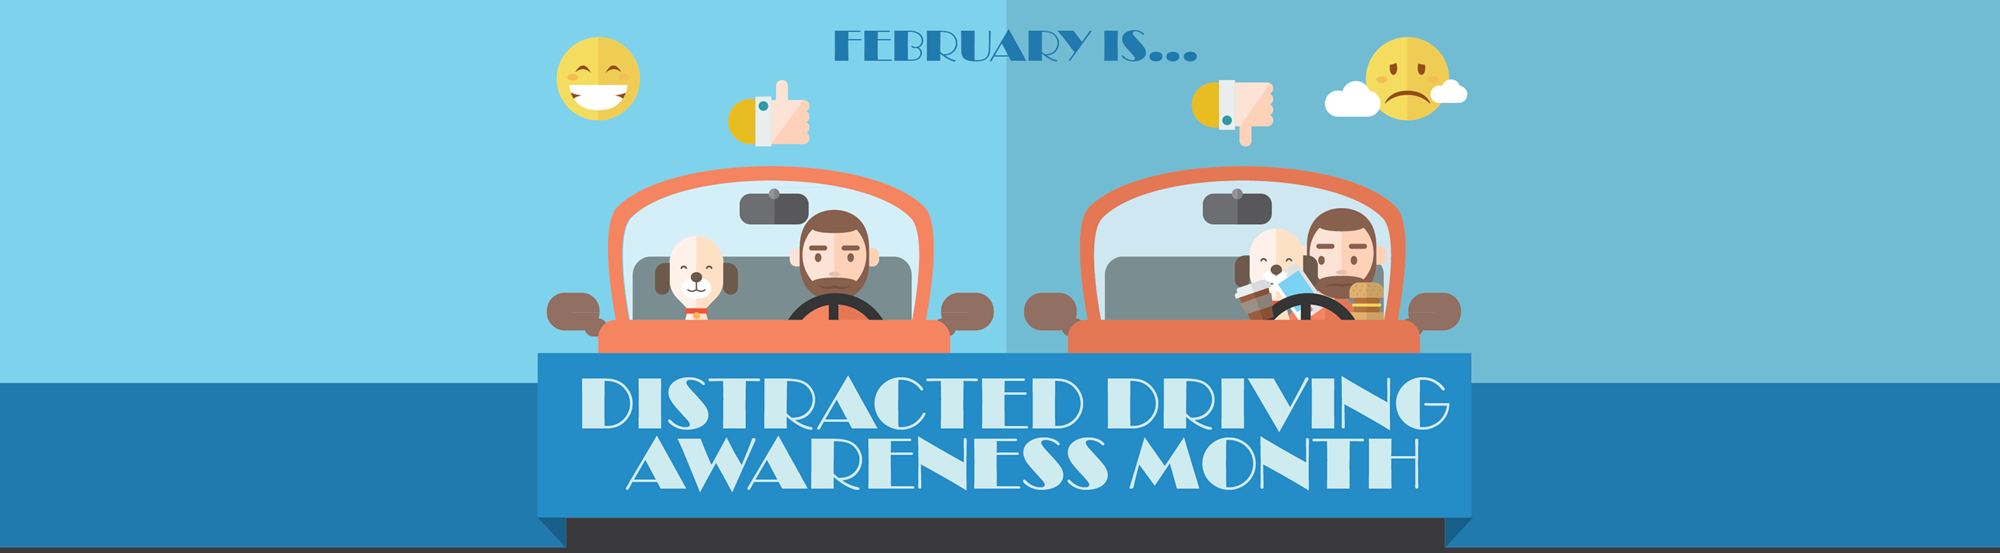 DISTRACTED DRIVING_2000